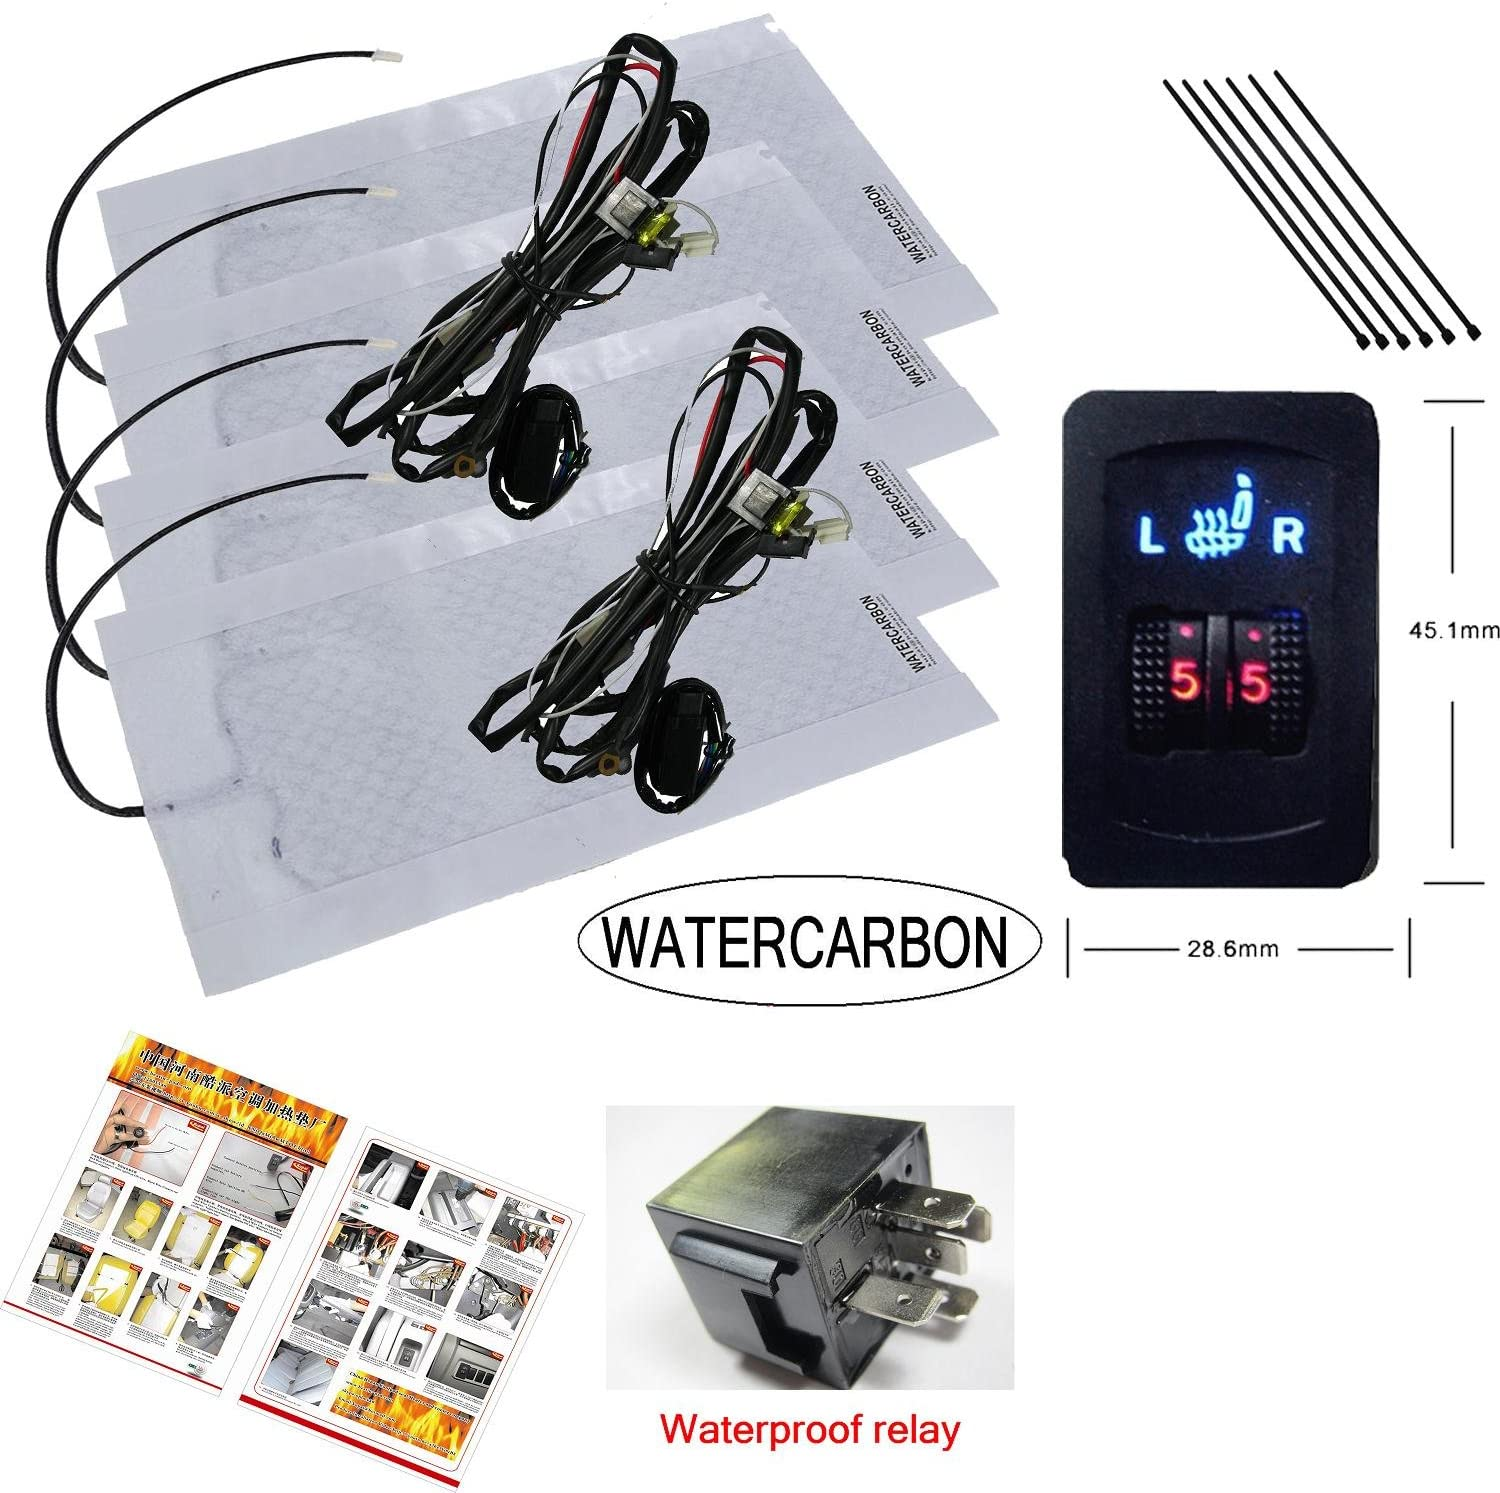 Amazon Com Watercarbon Water Carbon Premium Heated Seat Kits For Two Seats 5 Dial Setting Kit For Two Seats Electronics